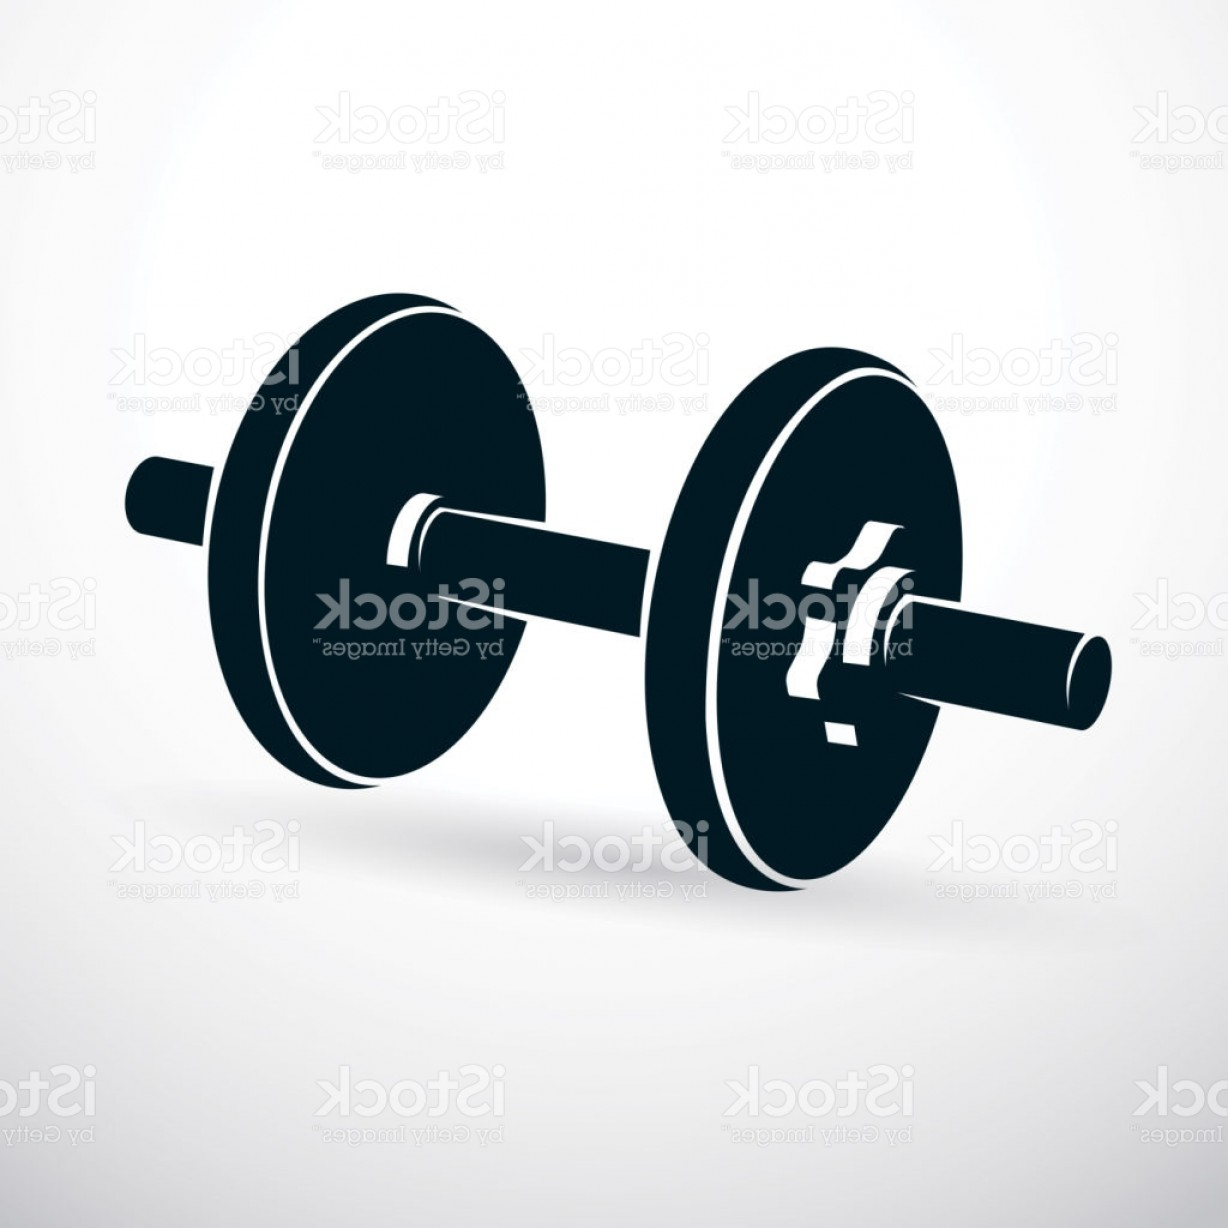 Vector Weight Lifting: Dumbbell Vector Illustration Isolated On White Composed With Disc Weight Sport Gm